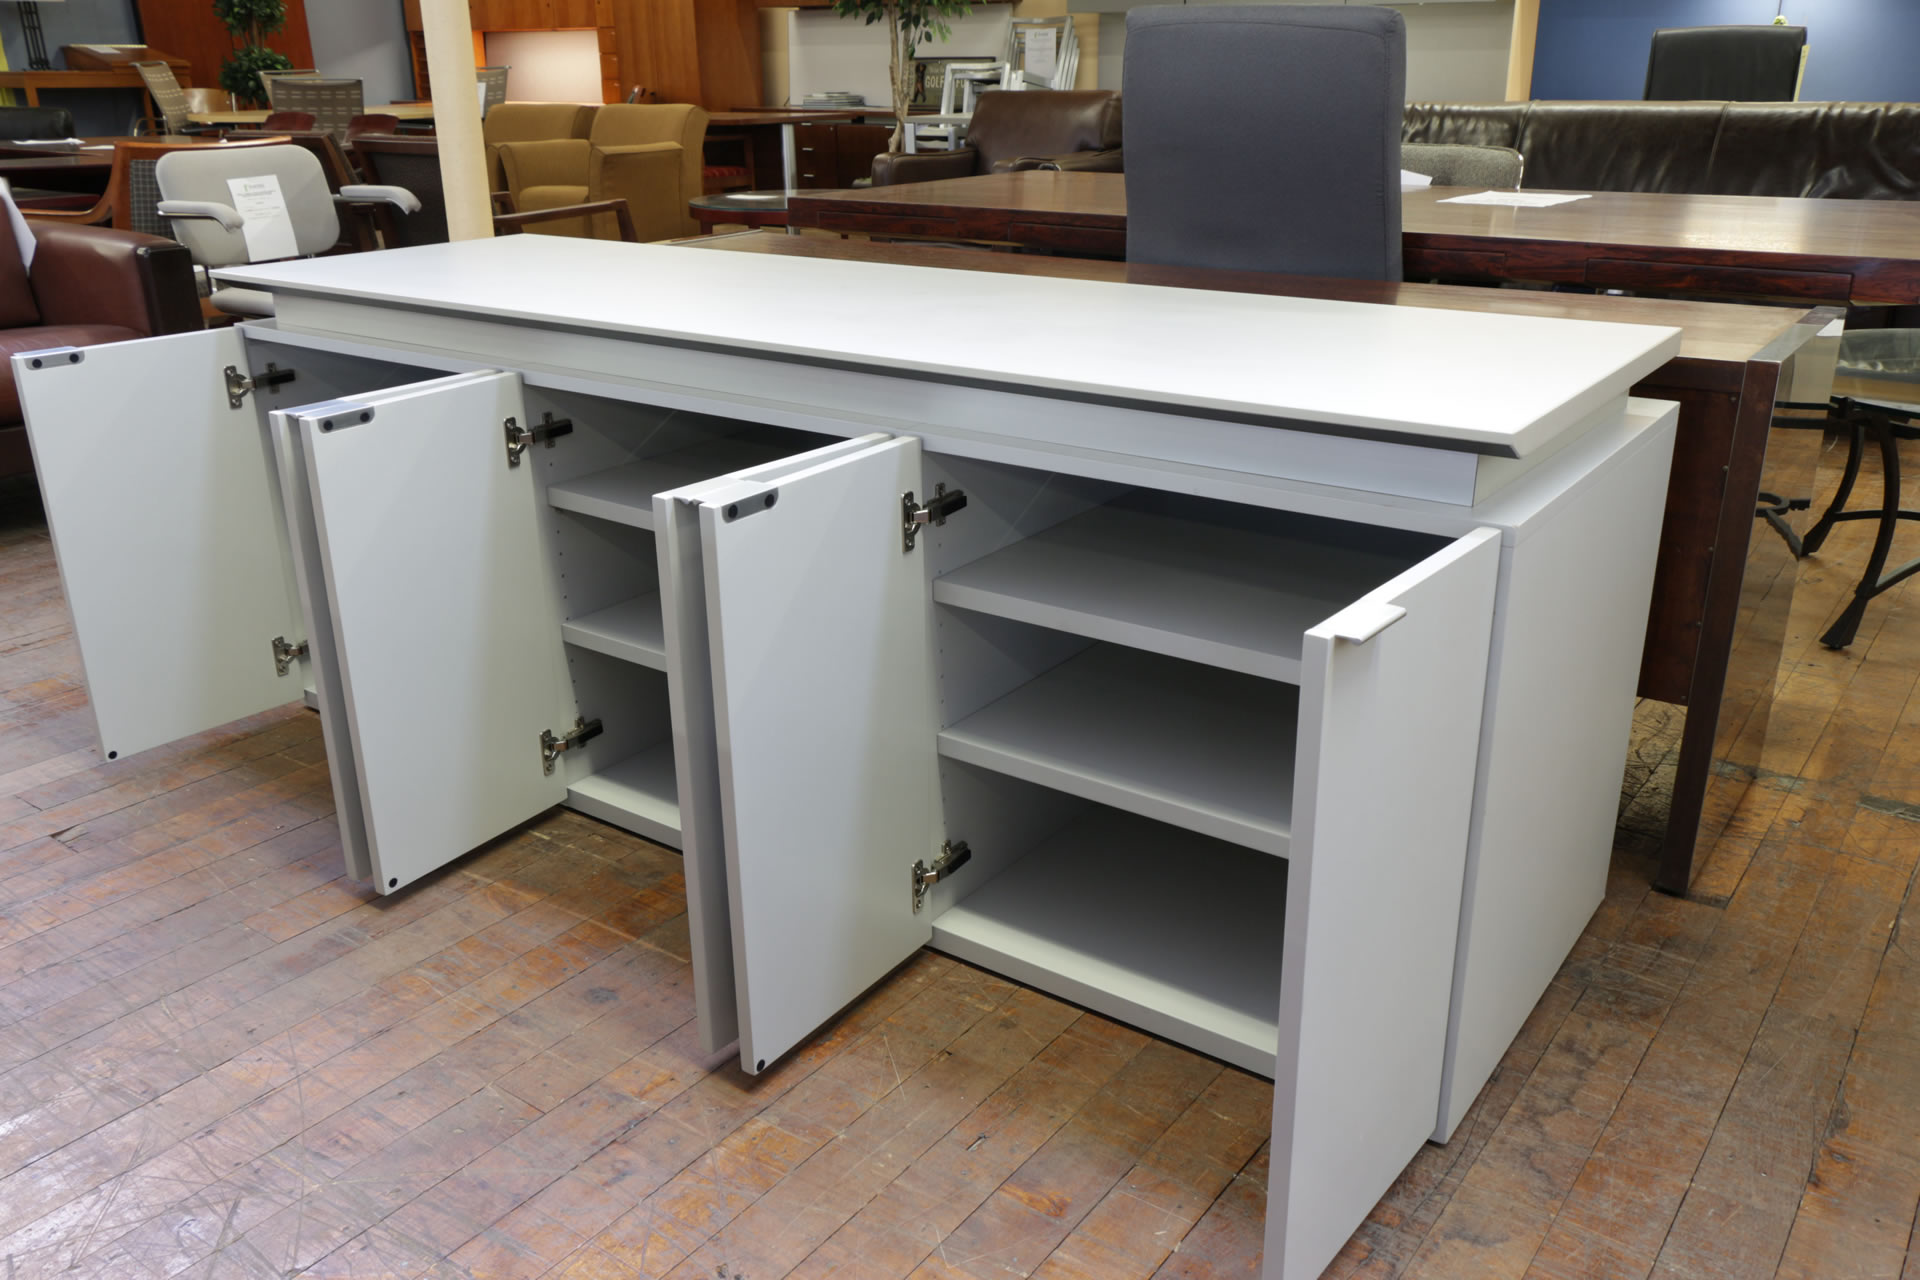 peartreeofficefurniture_peartreeofficefurniture_peartreeofficefurniture_img_9176.jpg